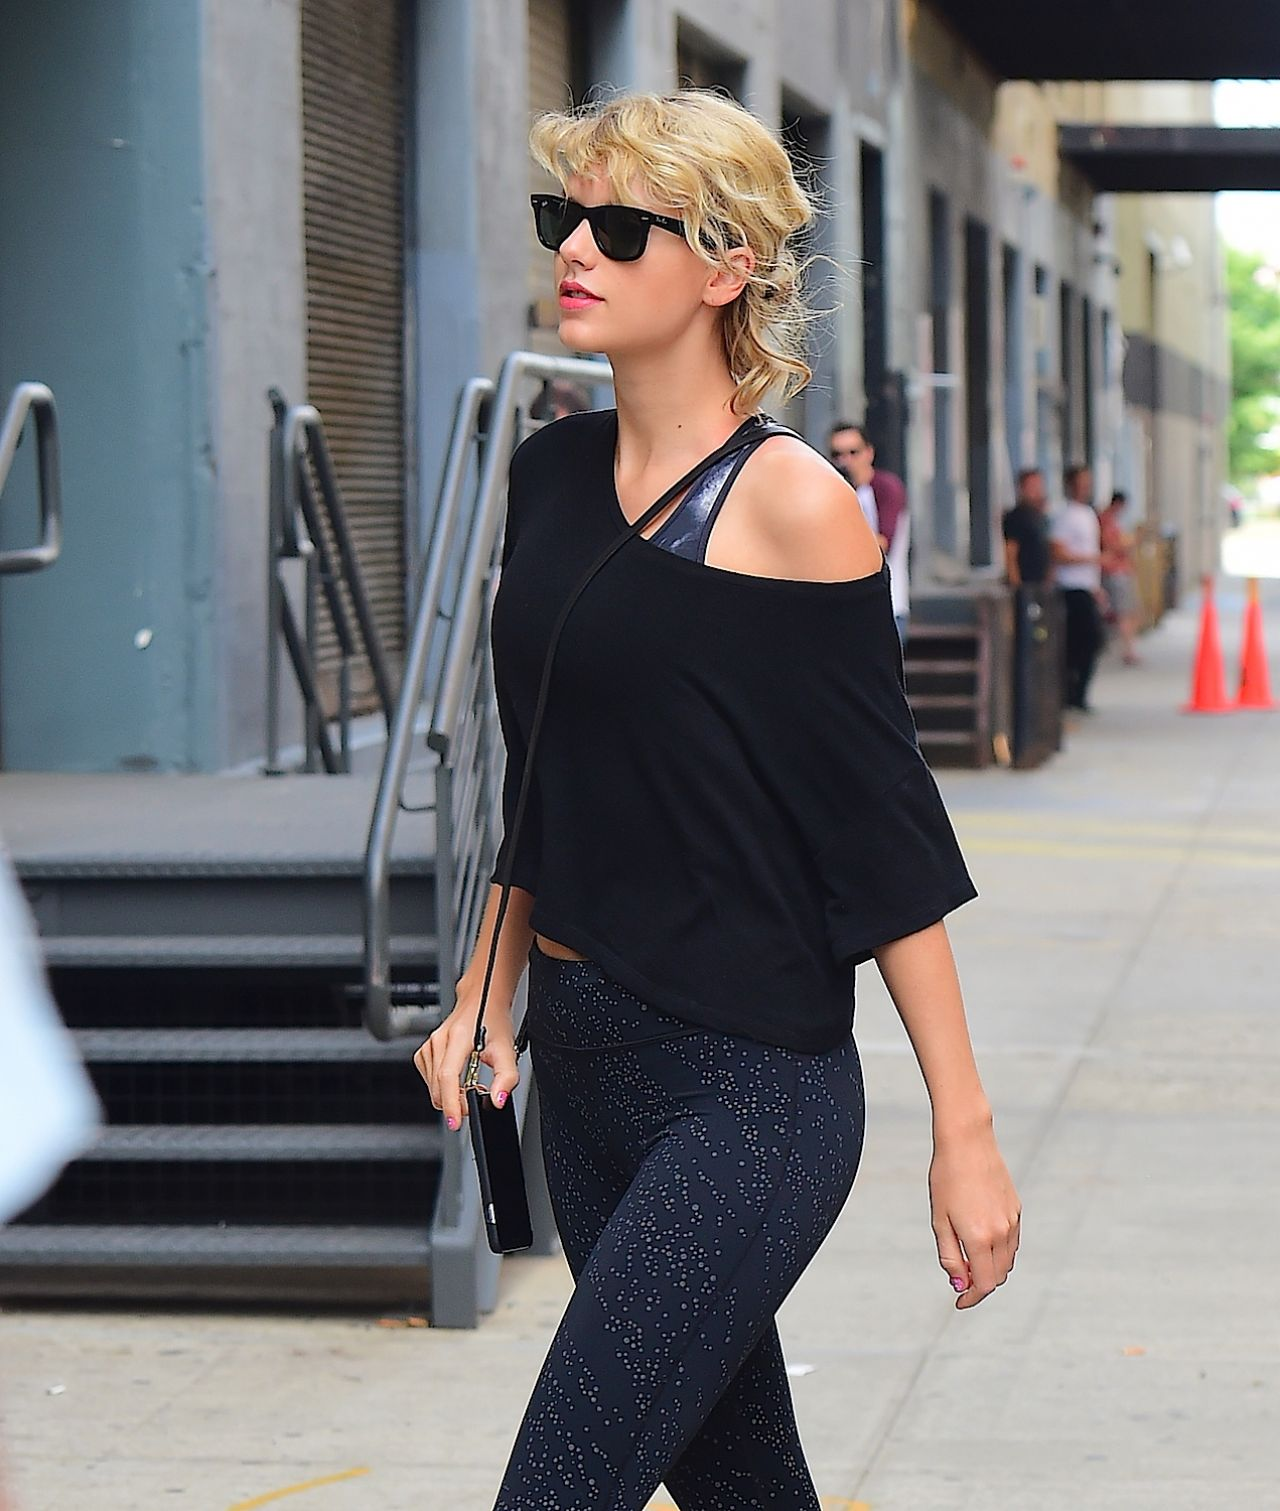 Taylor Swift Gym Style Nyc 8 8 2016